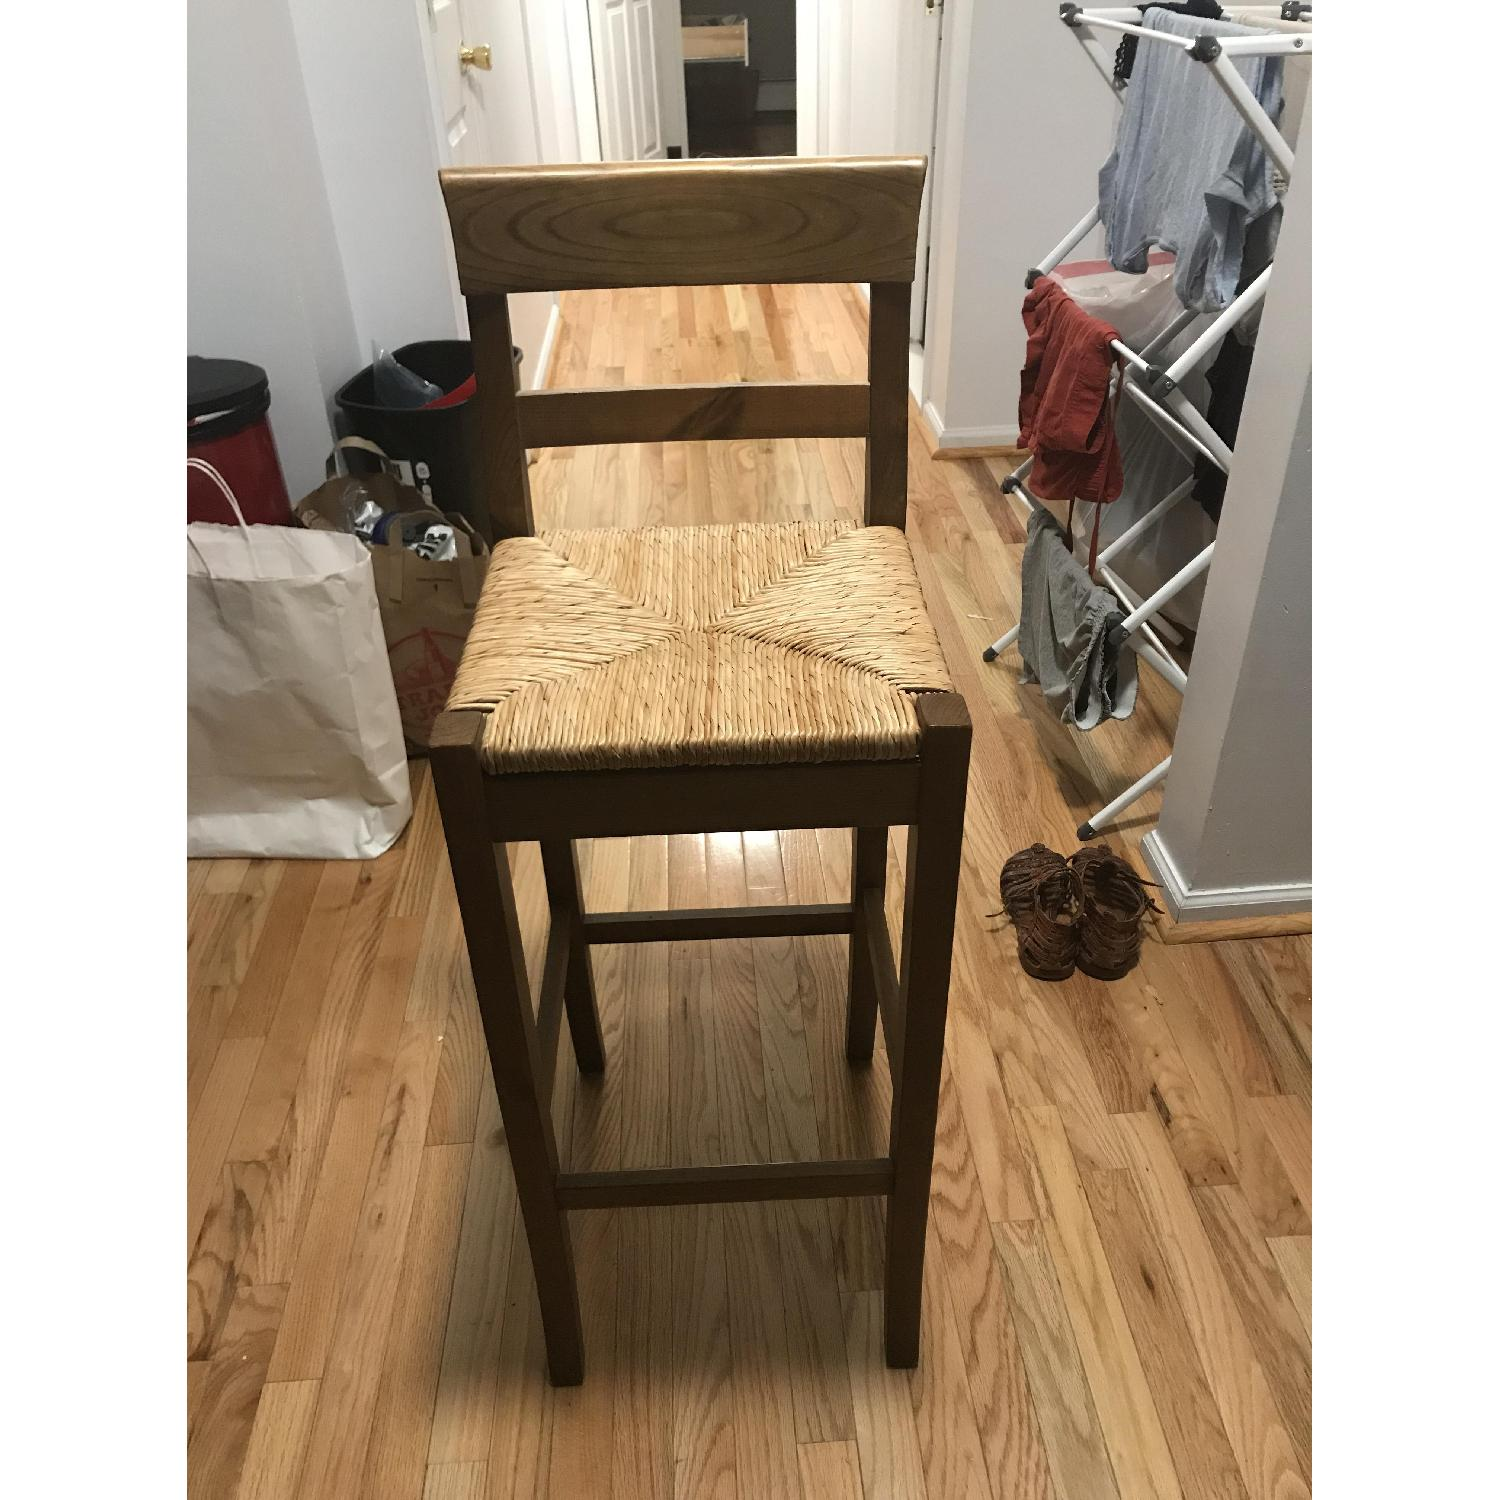 pier 1 brown wooden bar stool w woven seat0